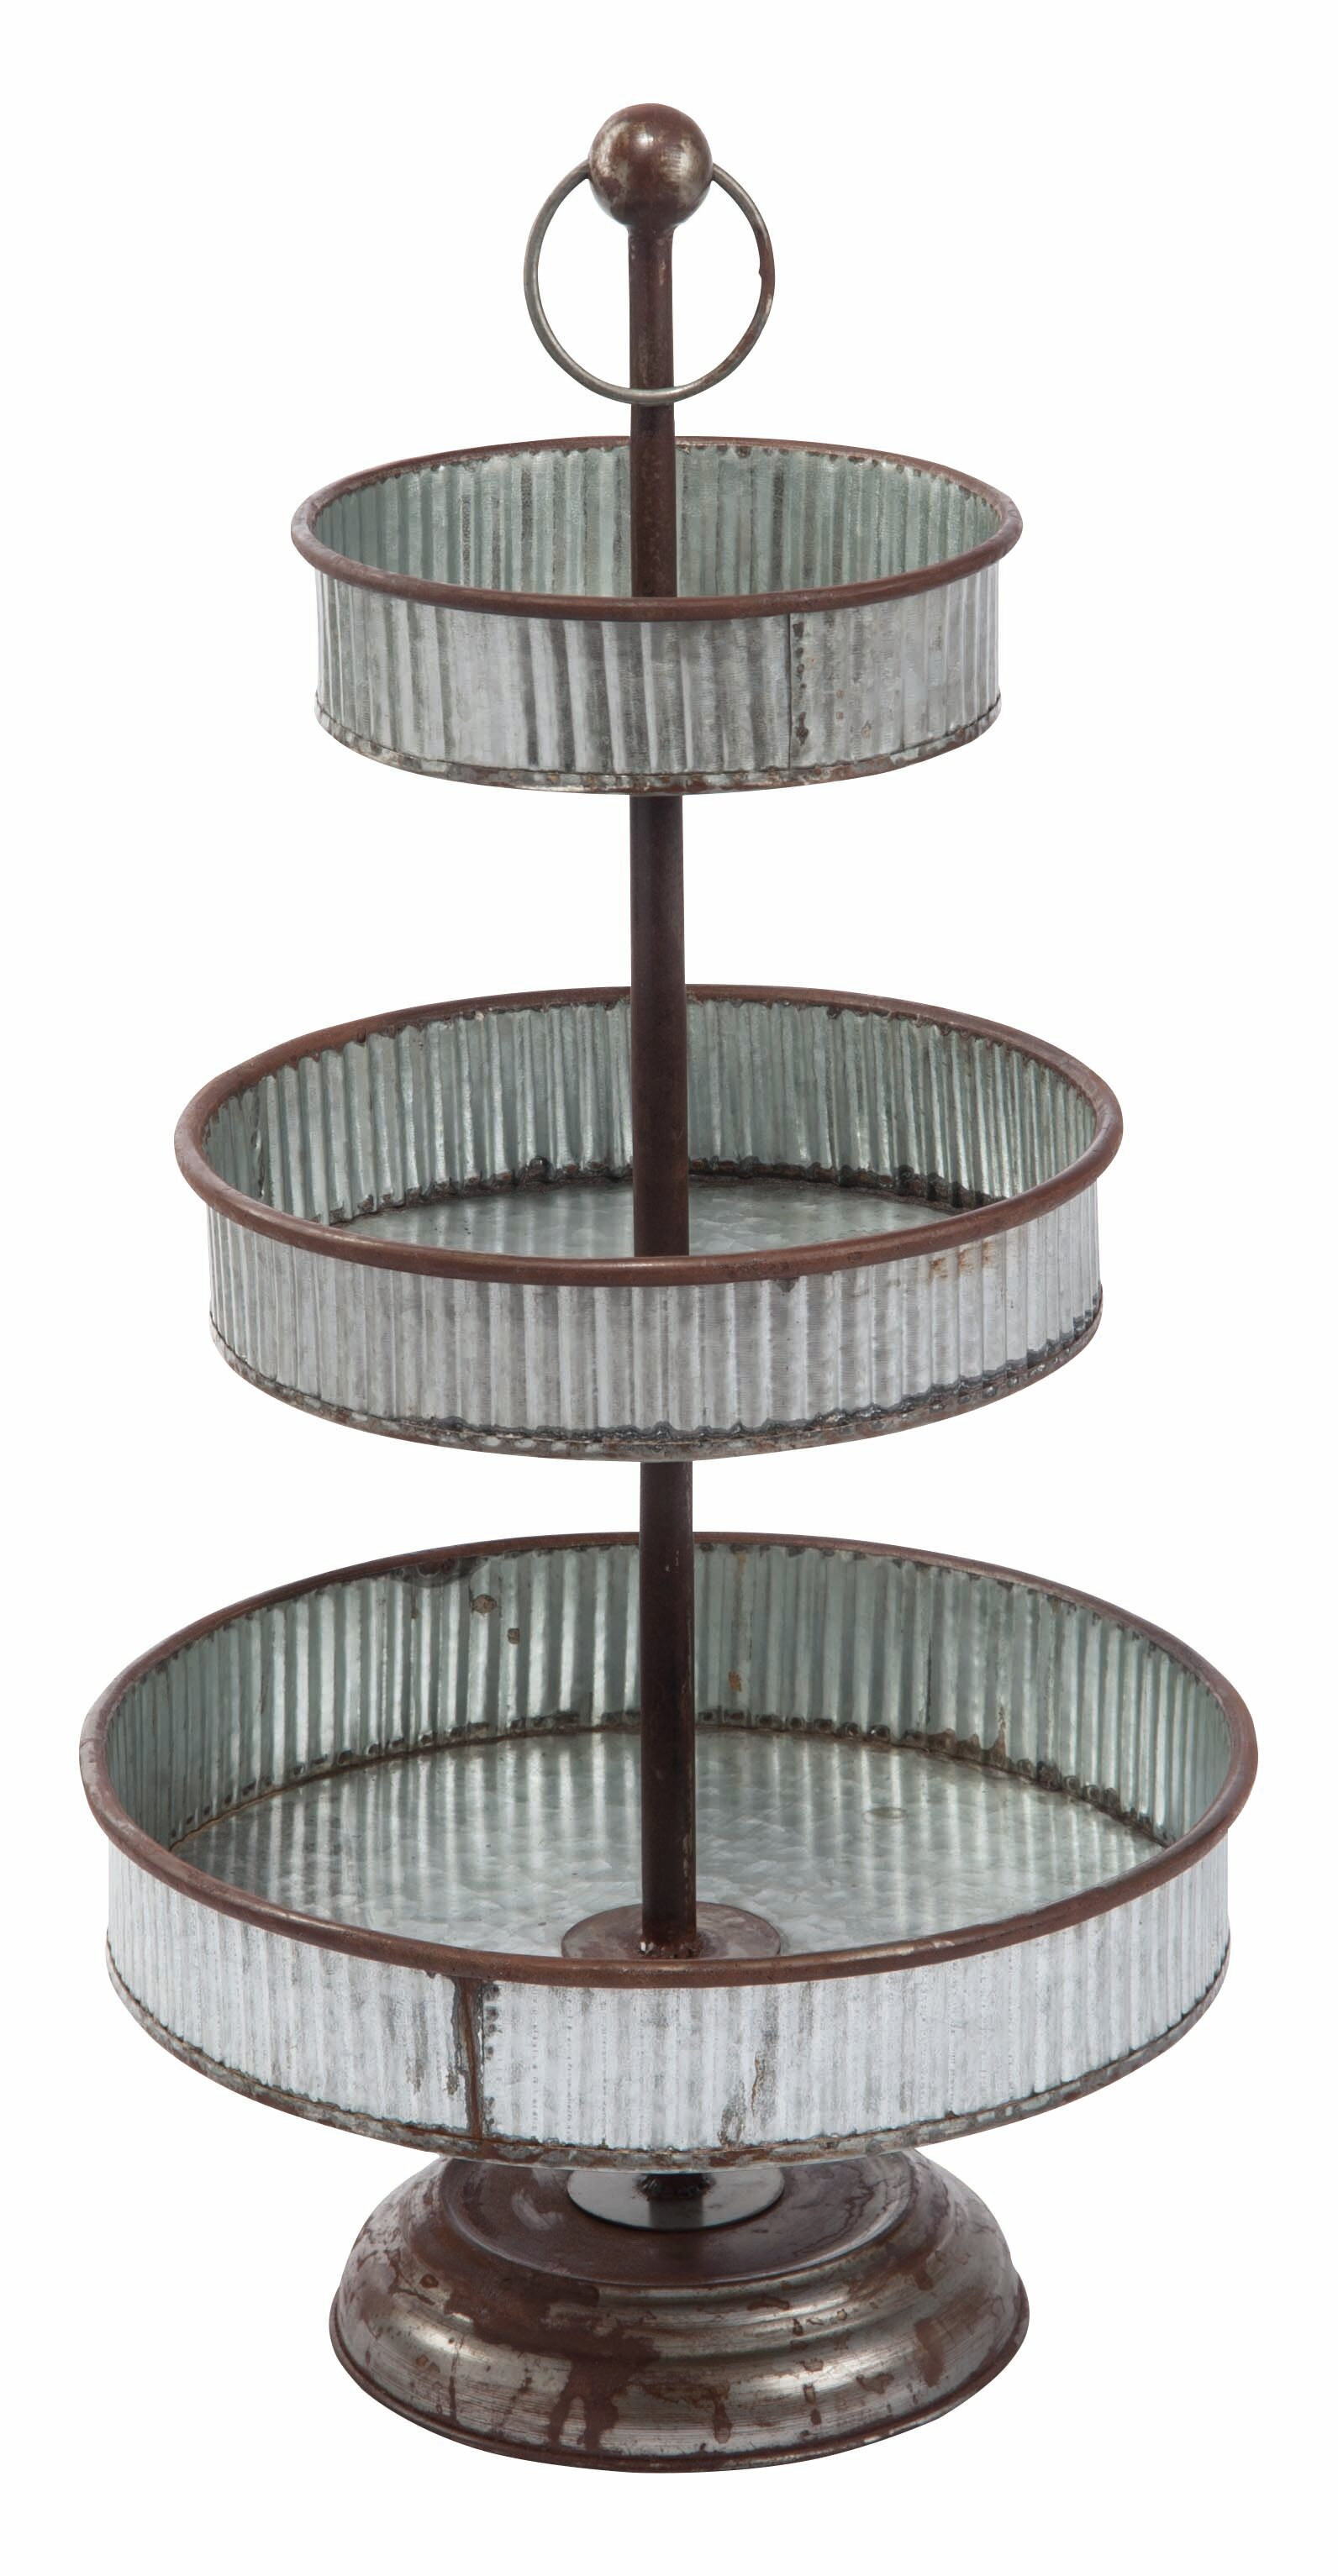 Tiered Stands August Grove Cake Tiered Stands You Ll Love In 2021 Wayfair